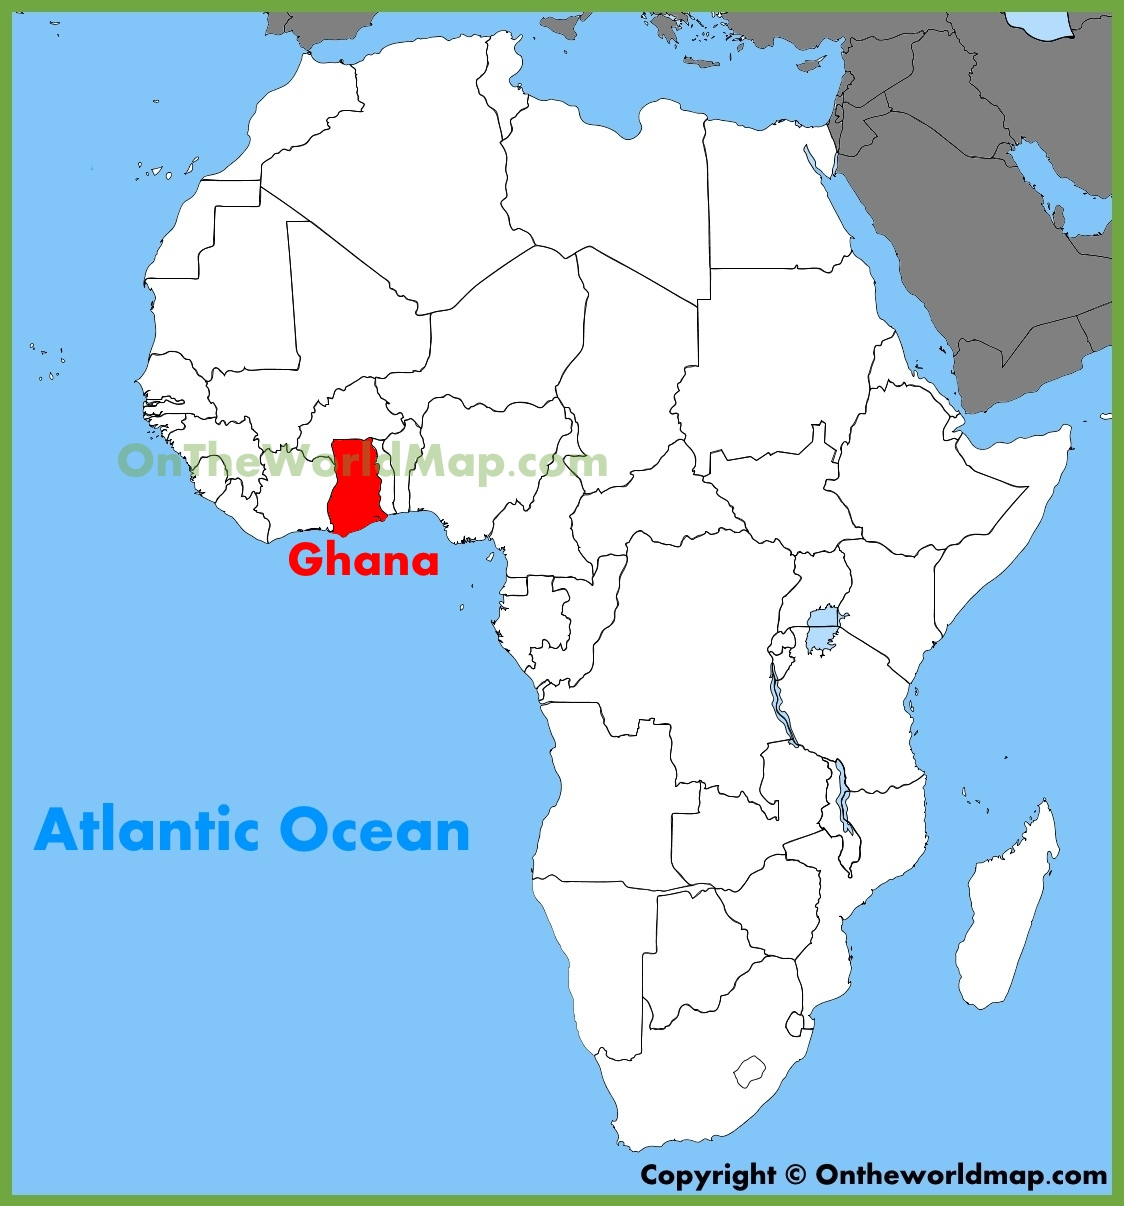 Ghana Africa Map Ghana location on the Africa map